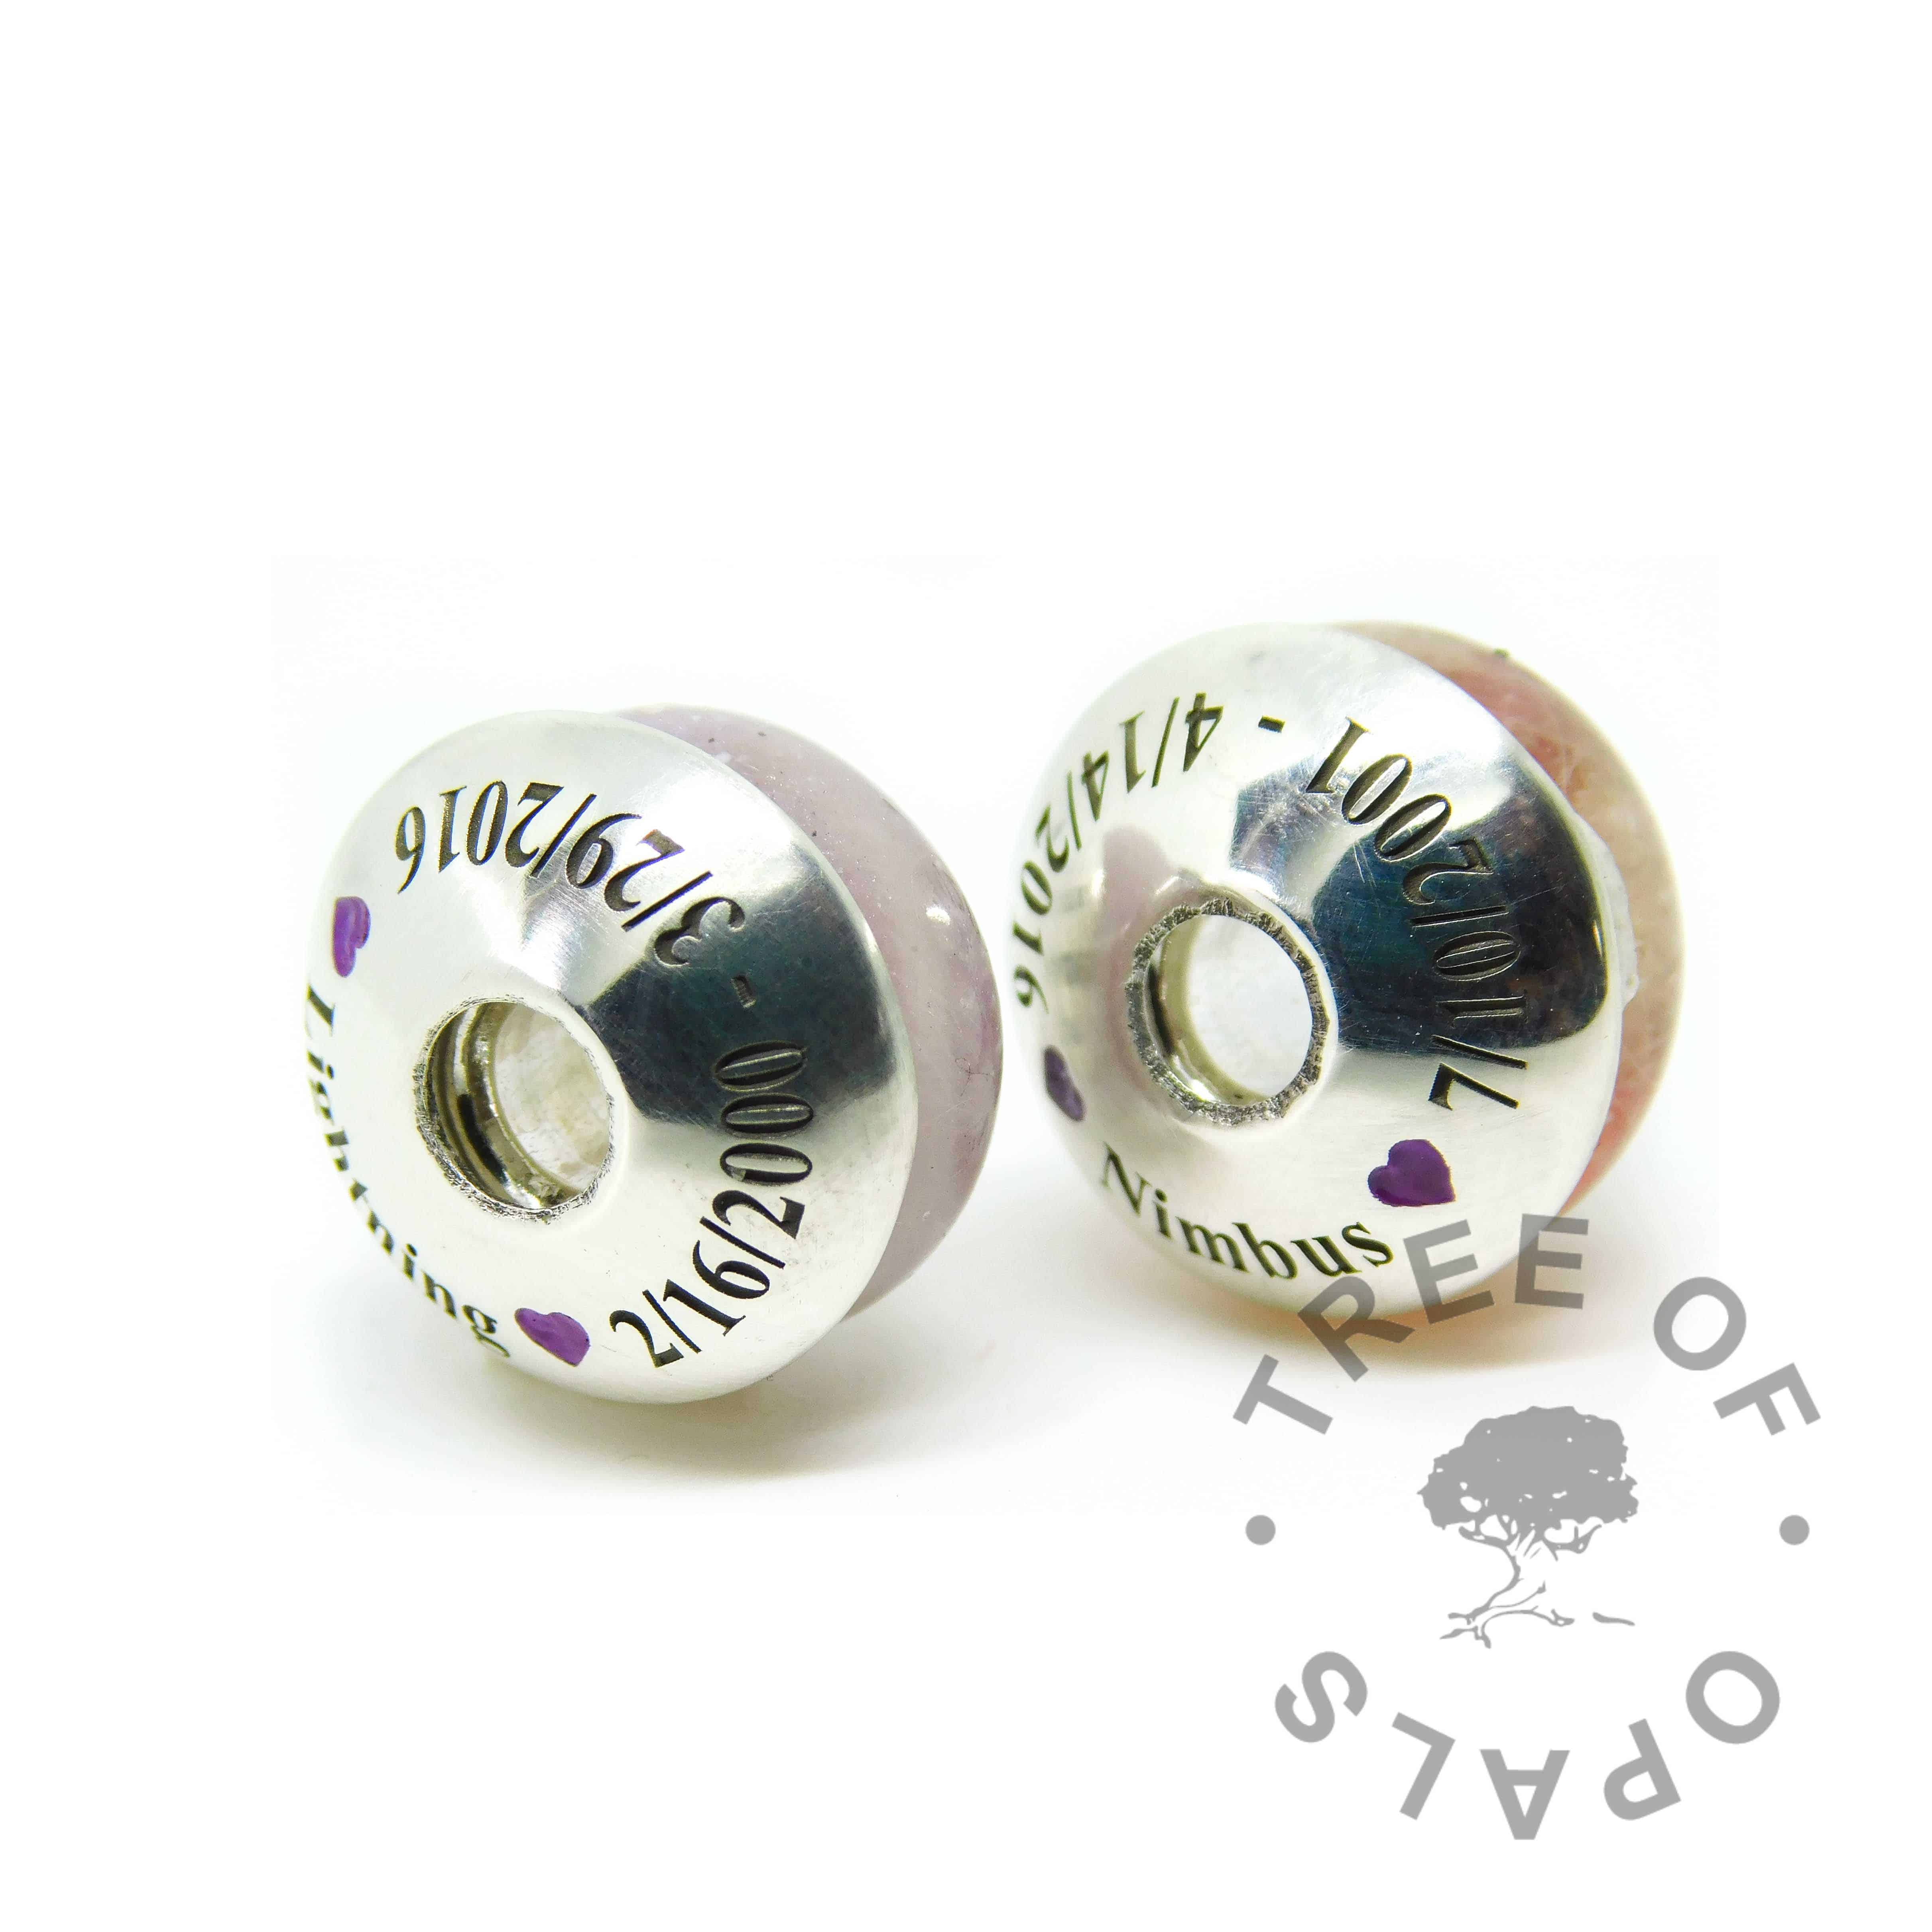 fur ash charm duo with engraved charm washers in Times New Roman font, two dates, names and hearts with purple cold enamel in the hearts. Handmade shapes. Watermarked copyright image by Tree of Opals